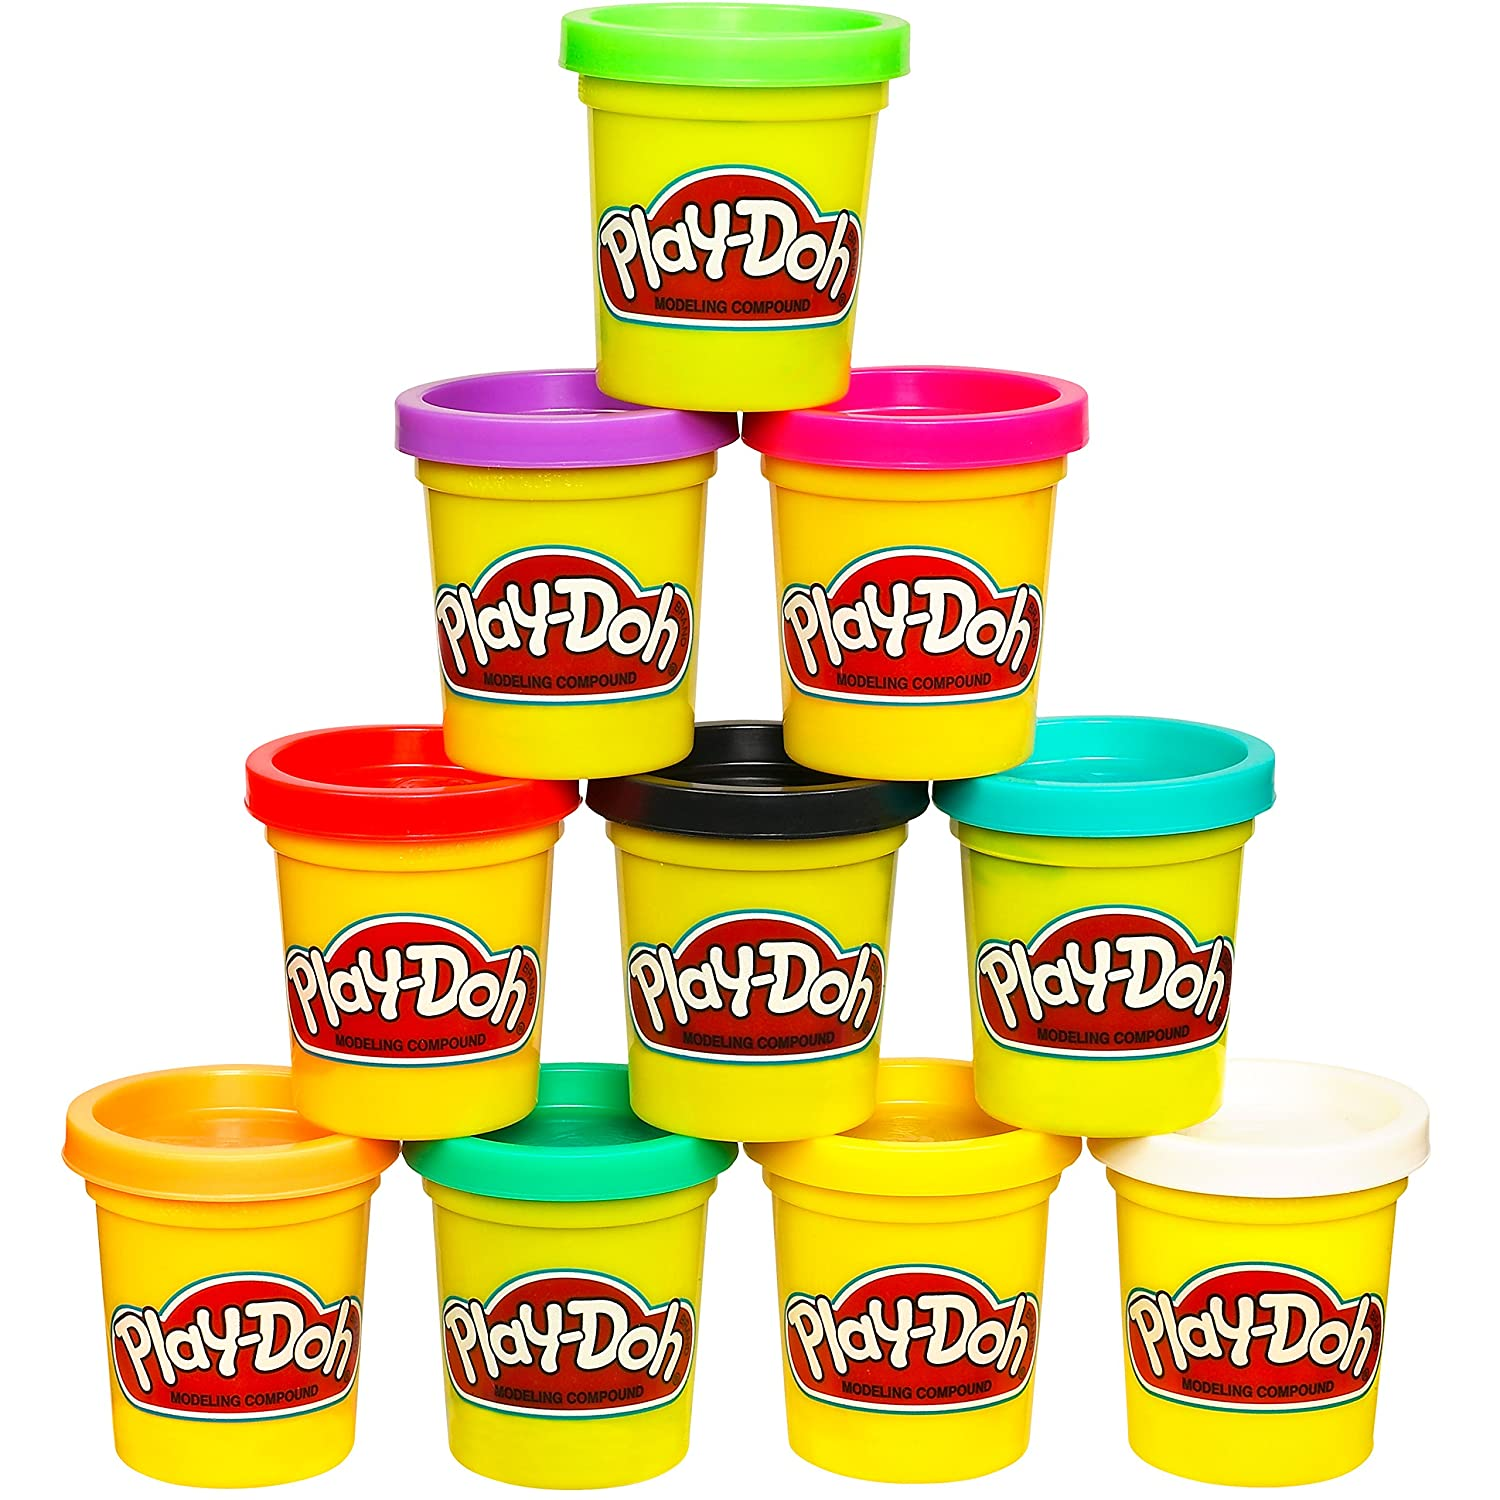 Amazon Com Play Doh Modeling Compound  Pack Case Of Colors Non Toxic Assorted Colors  Ounce Cans Ages  And Up Amazon Exclusive Toys Games